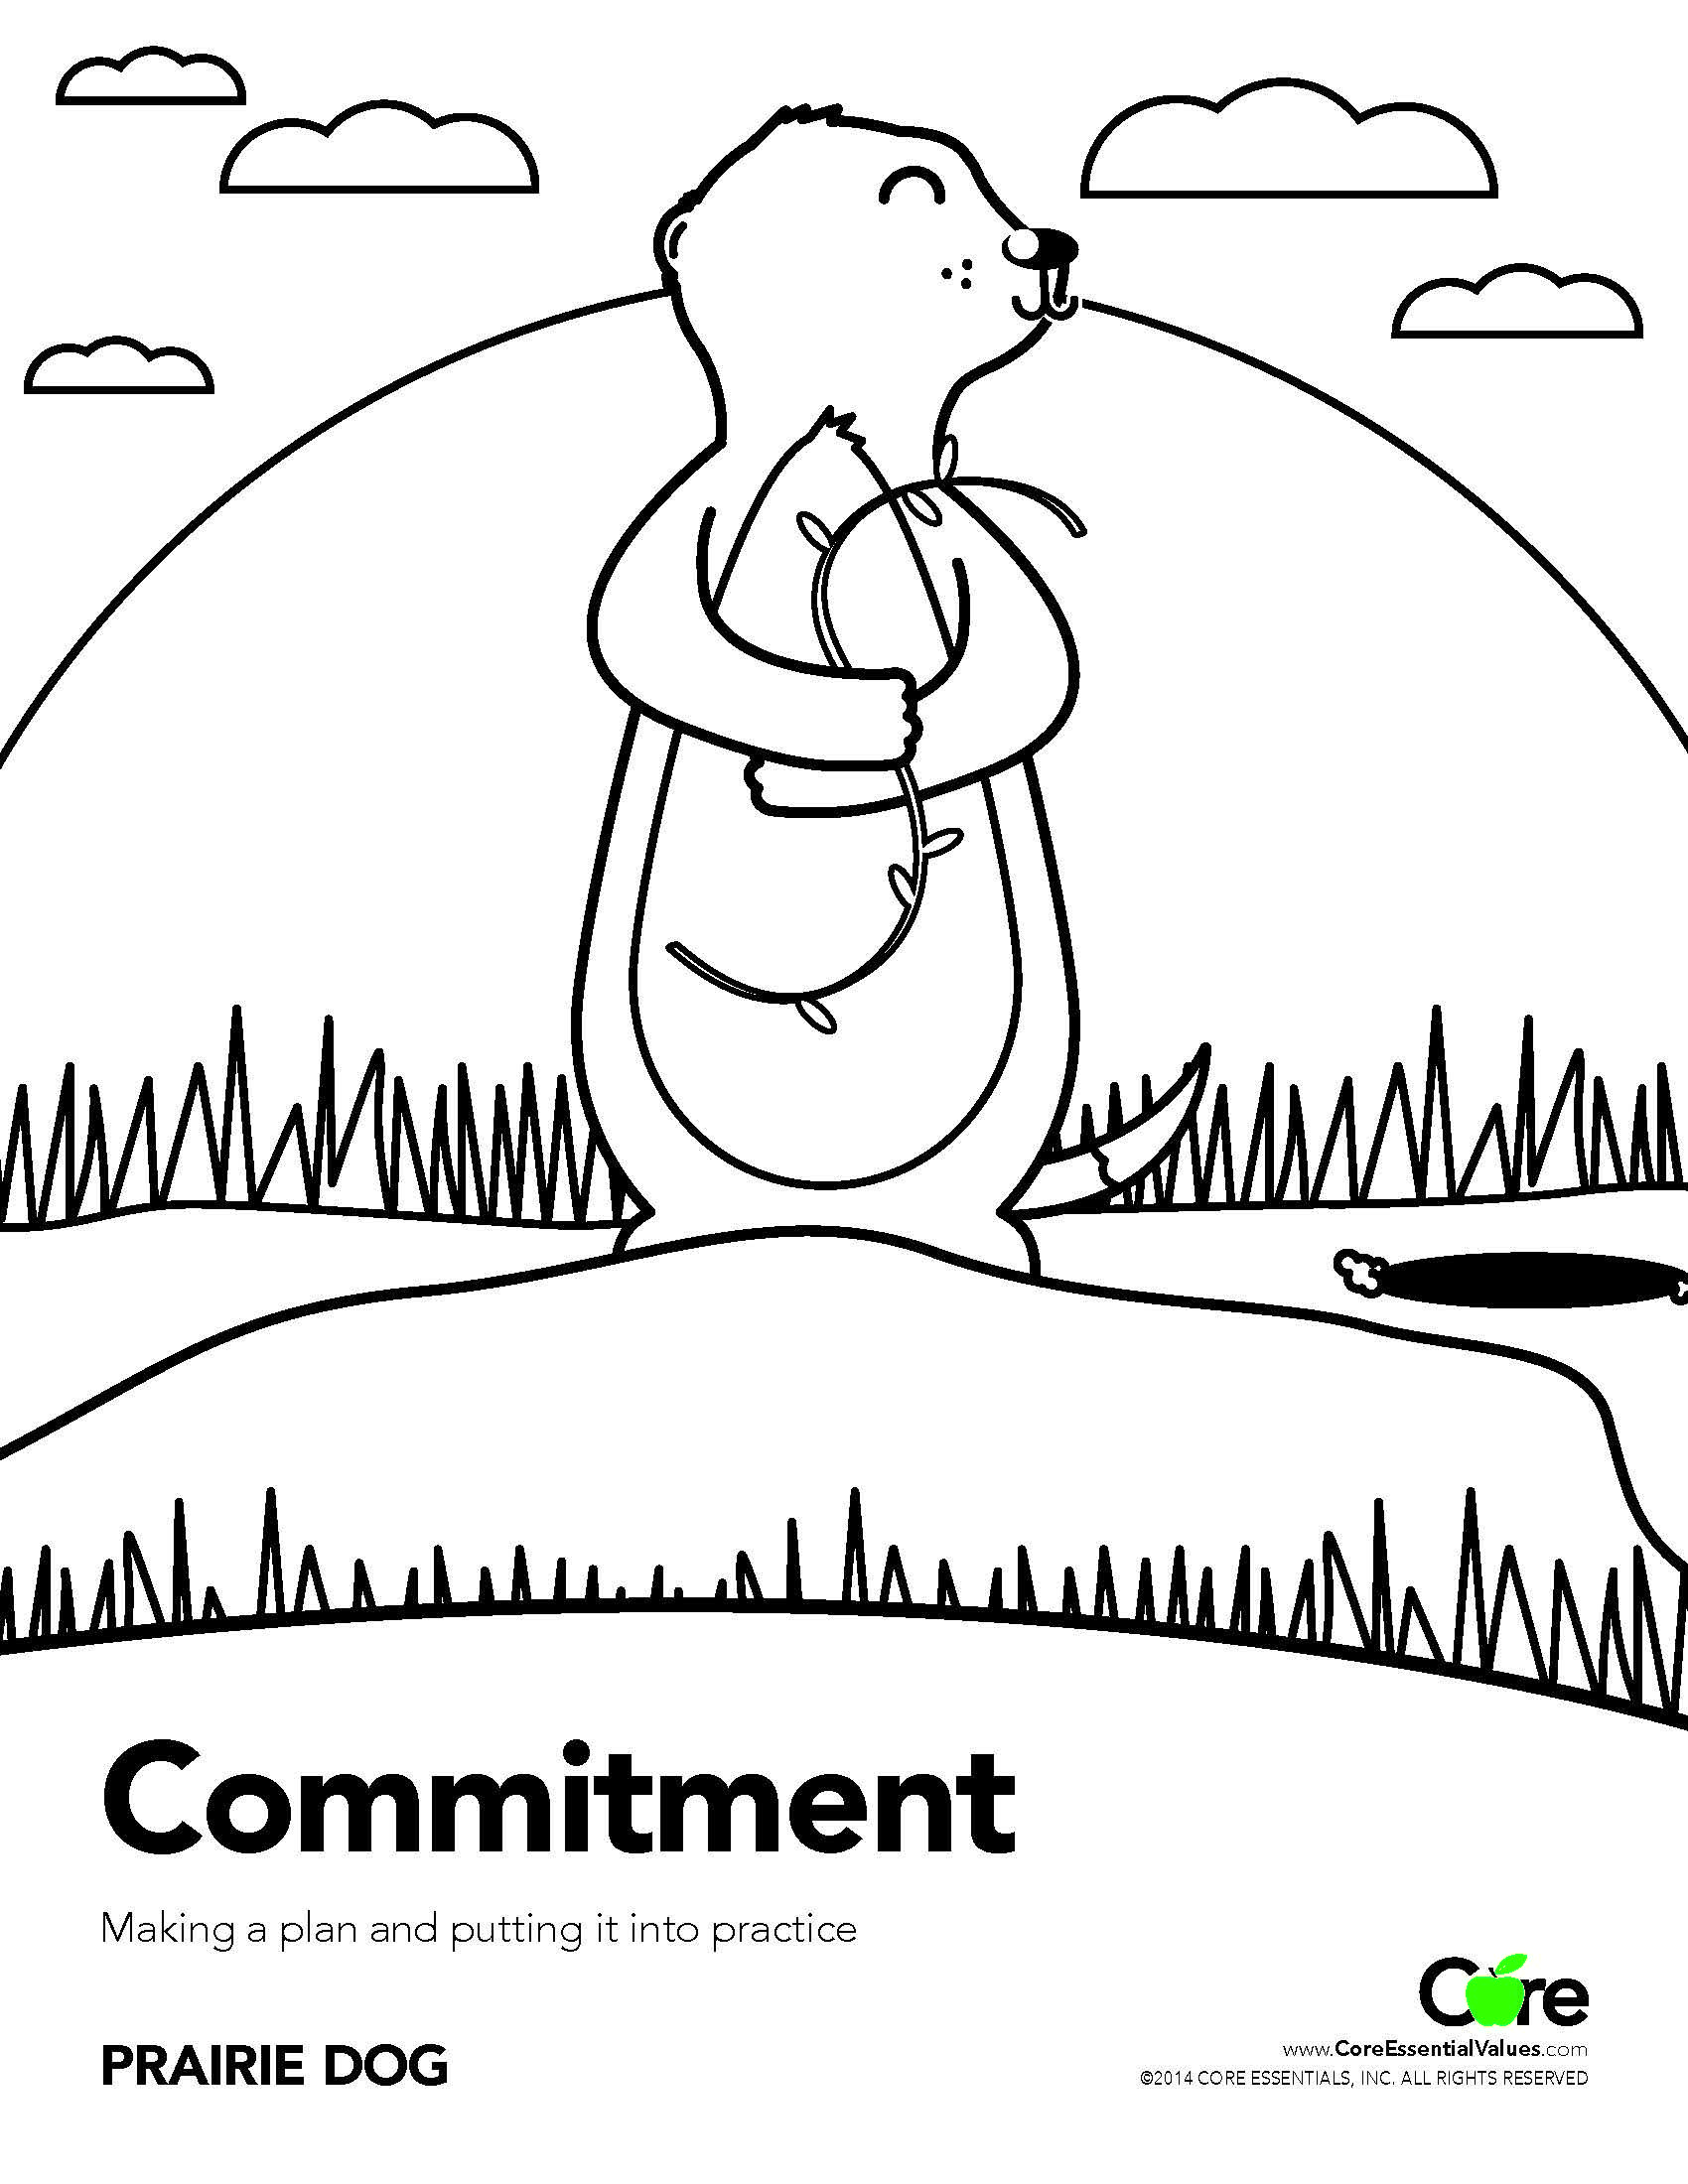 Commitment Coloring Sheet